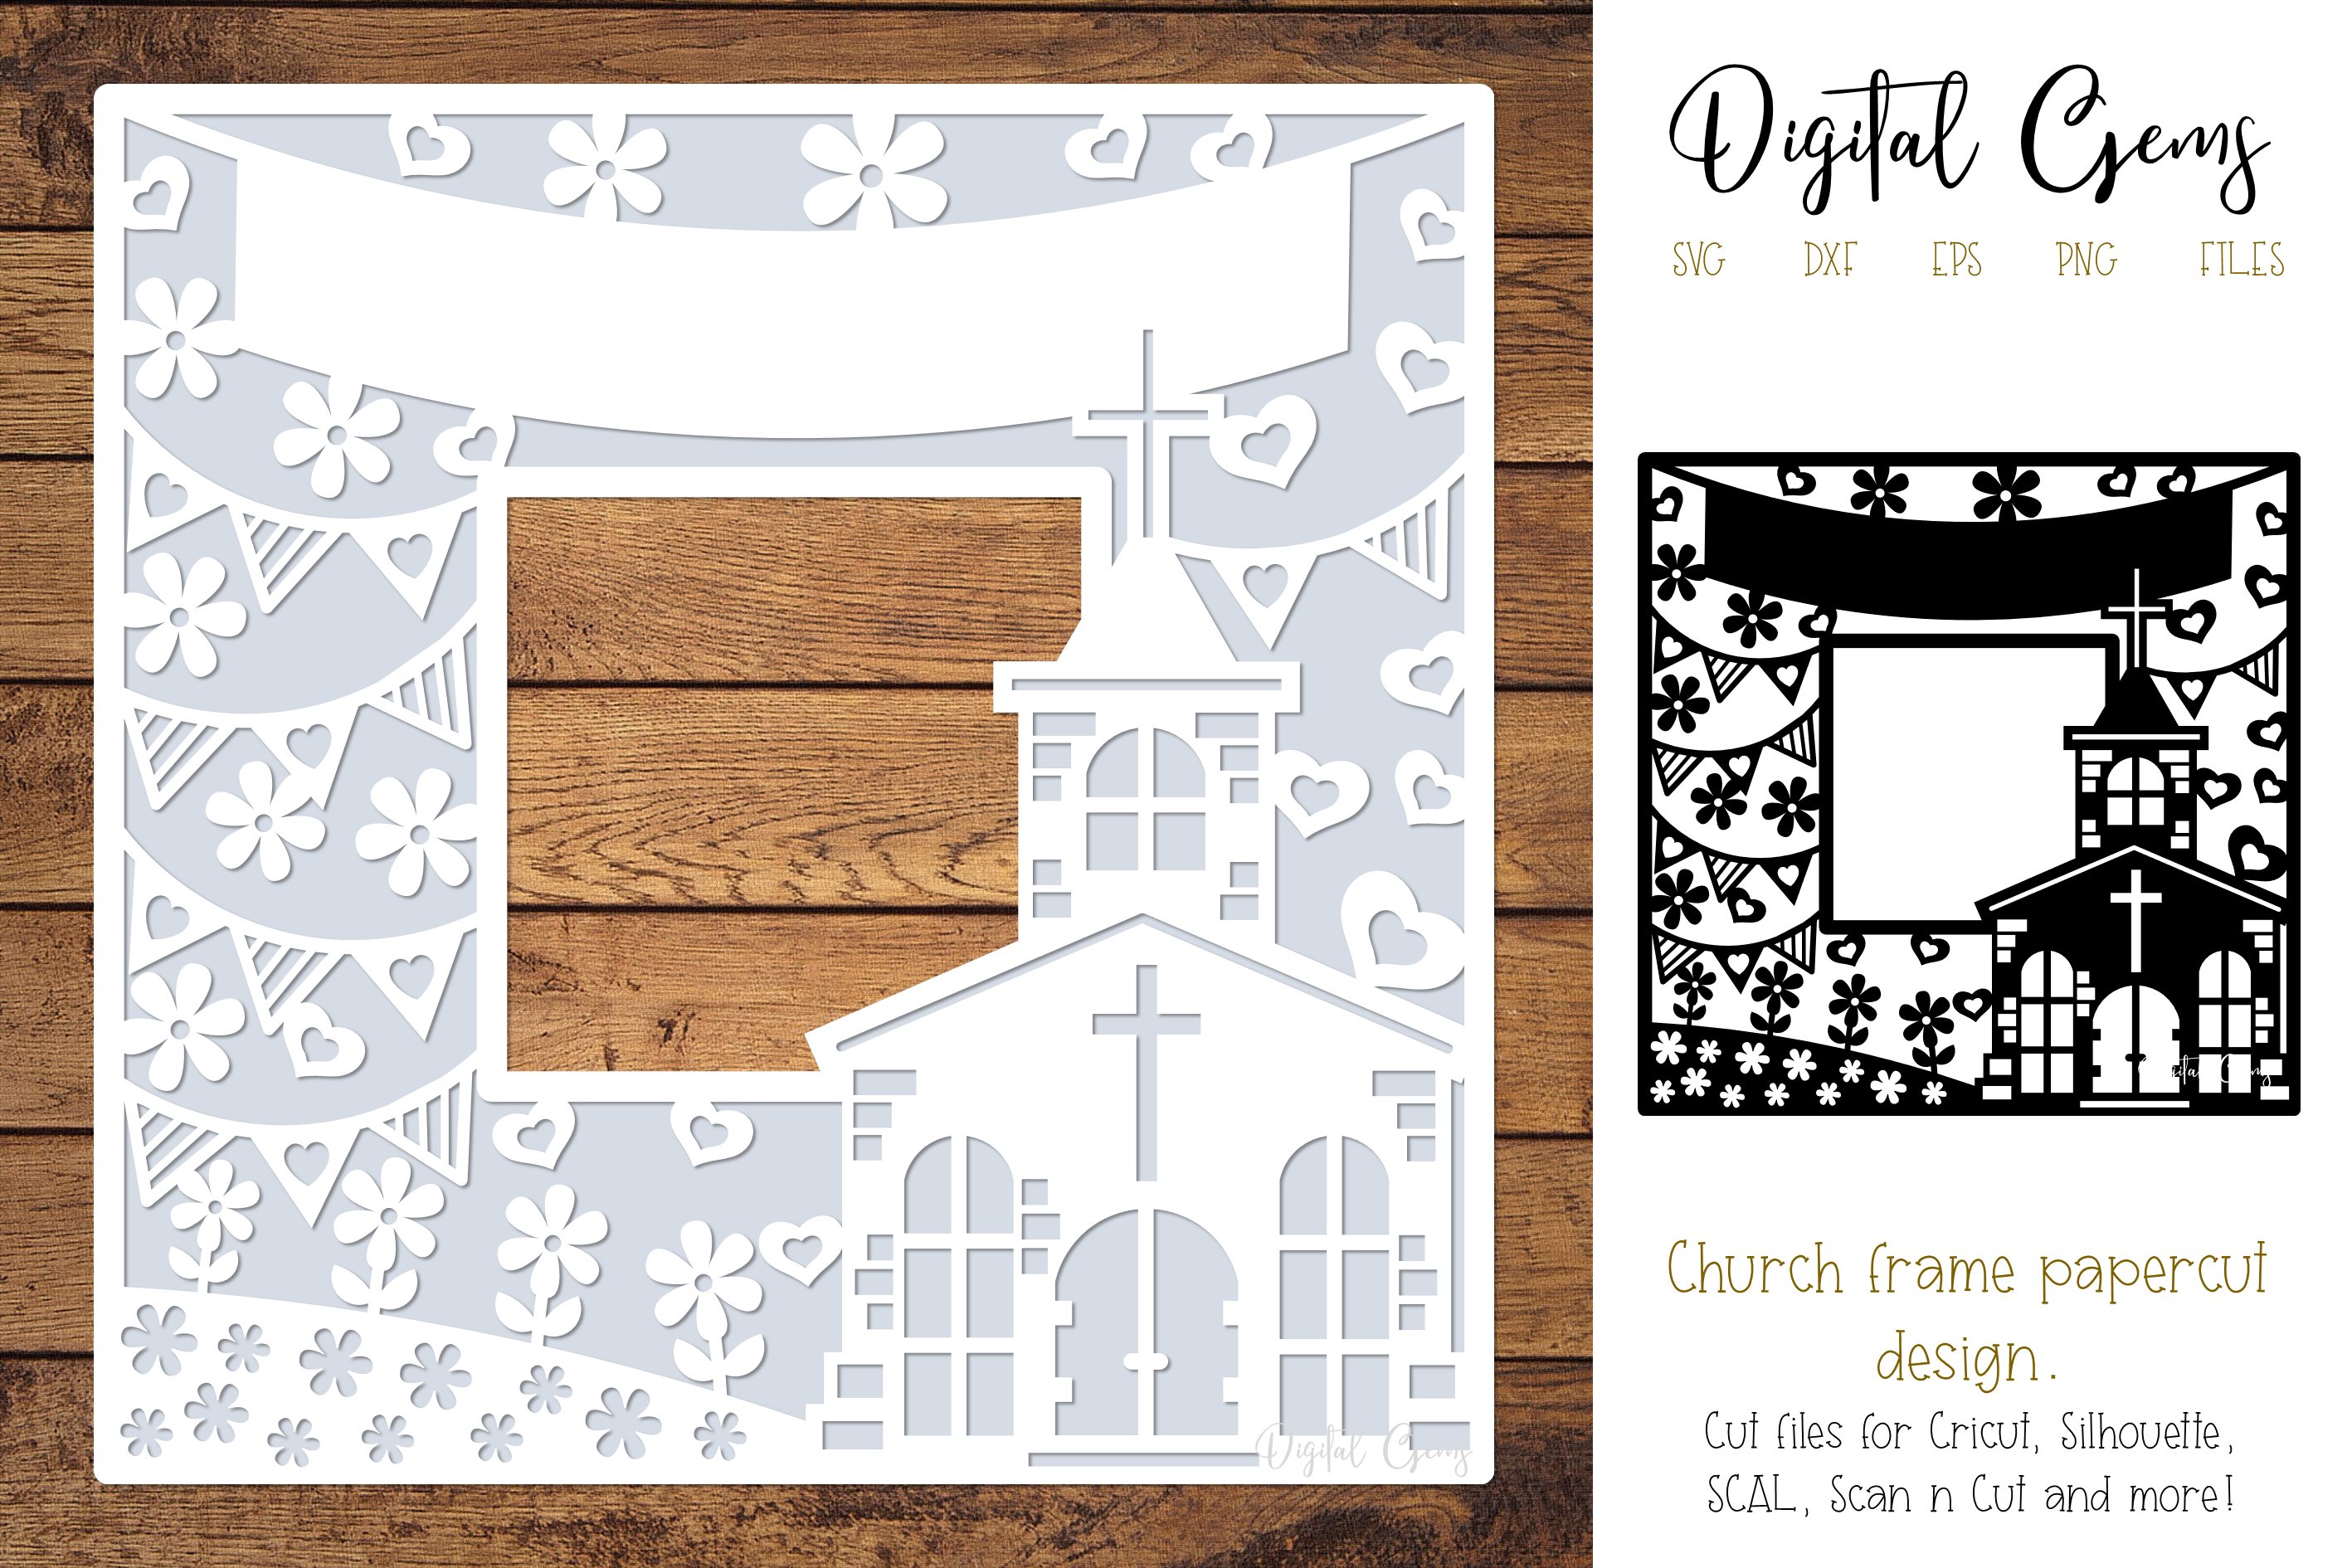 Church frame paper cut design SVG / DXF / EPS / PNG files example image 1